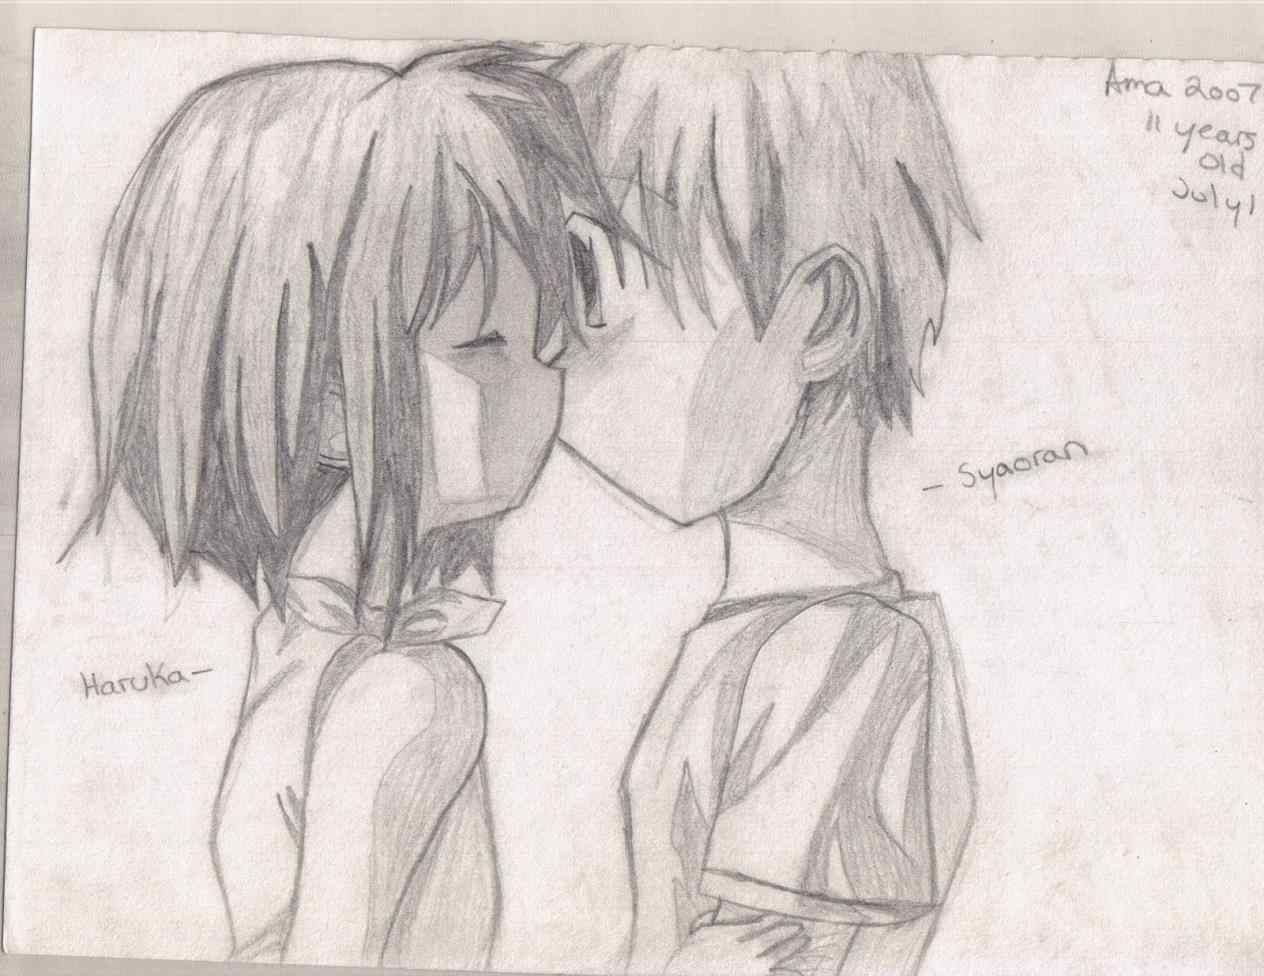 1264x976 Anime Love Drawing Cute Couple S In Pencil Drawn Draw